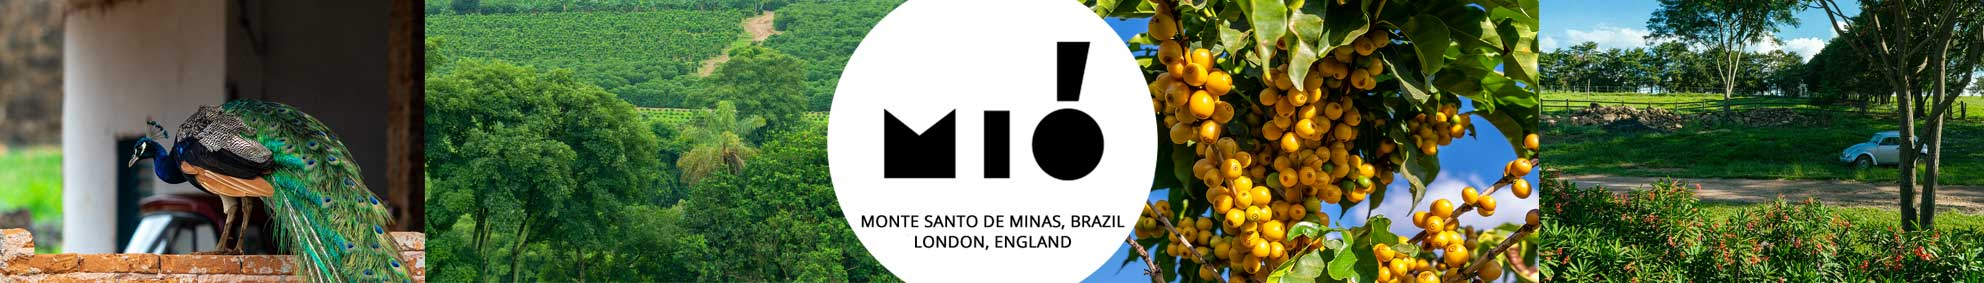 Mio Farm Brazil Direct Trade UK Best Coffee Subscription